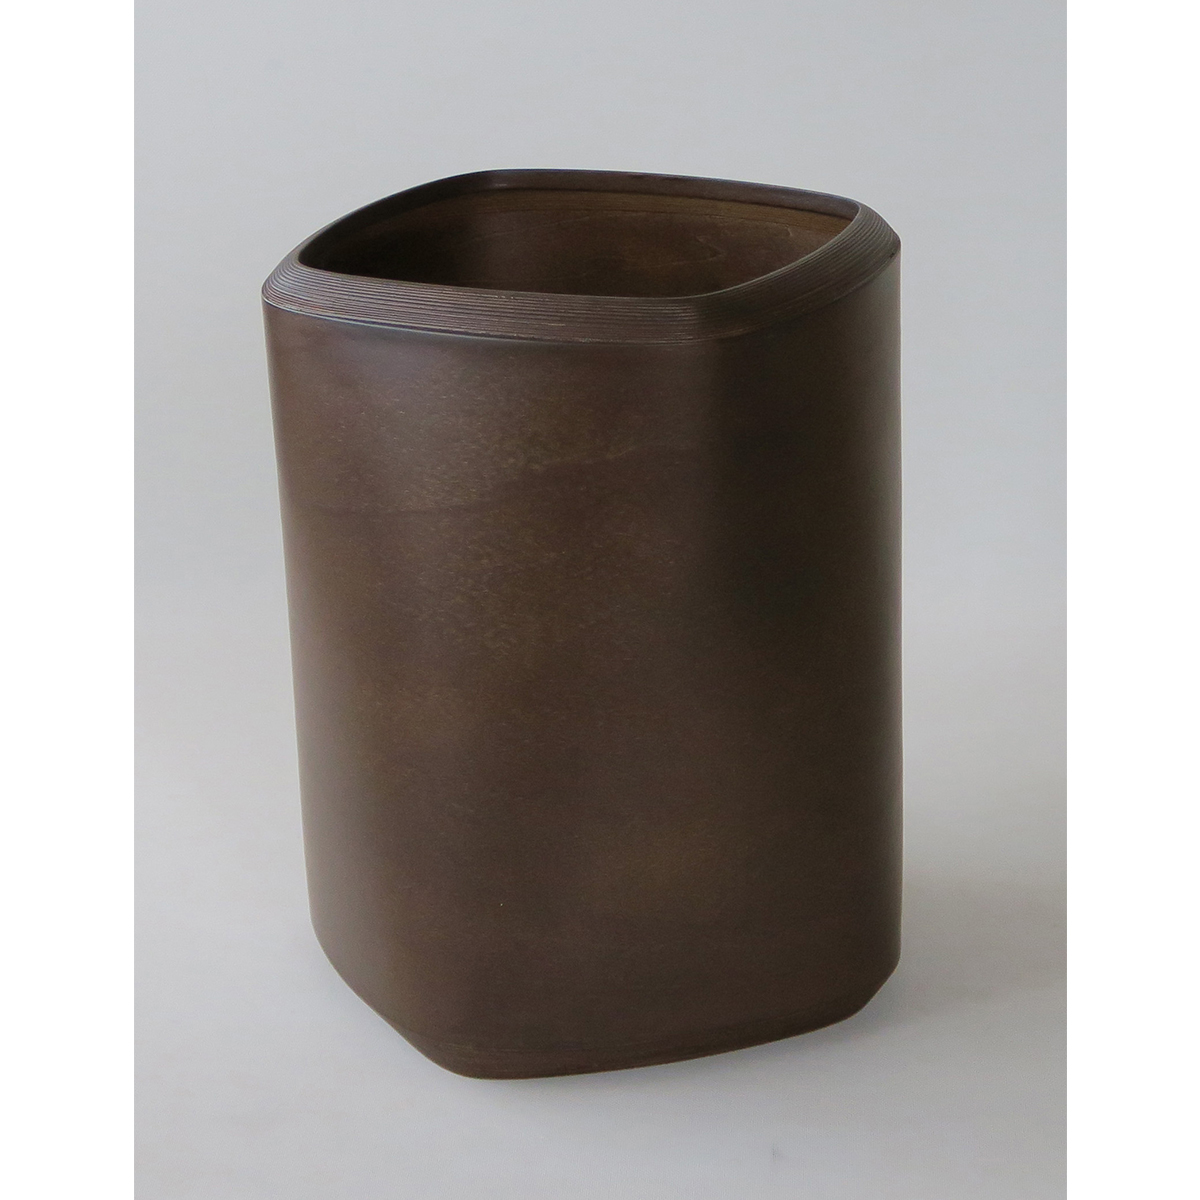 ブナコ INTERIOR GOODS DUST BIN IB-D8216 Dark brown /マルゲリータ